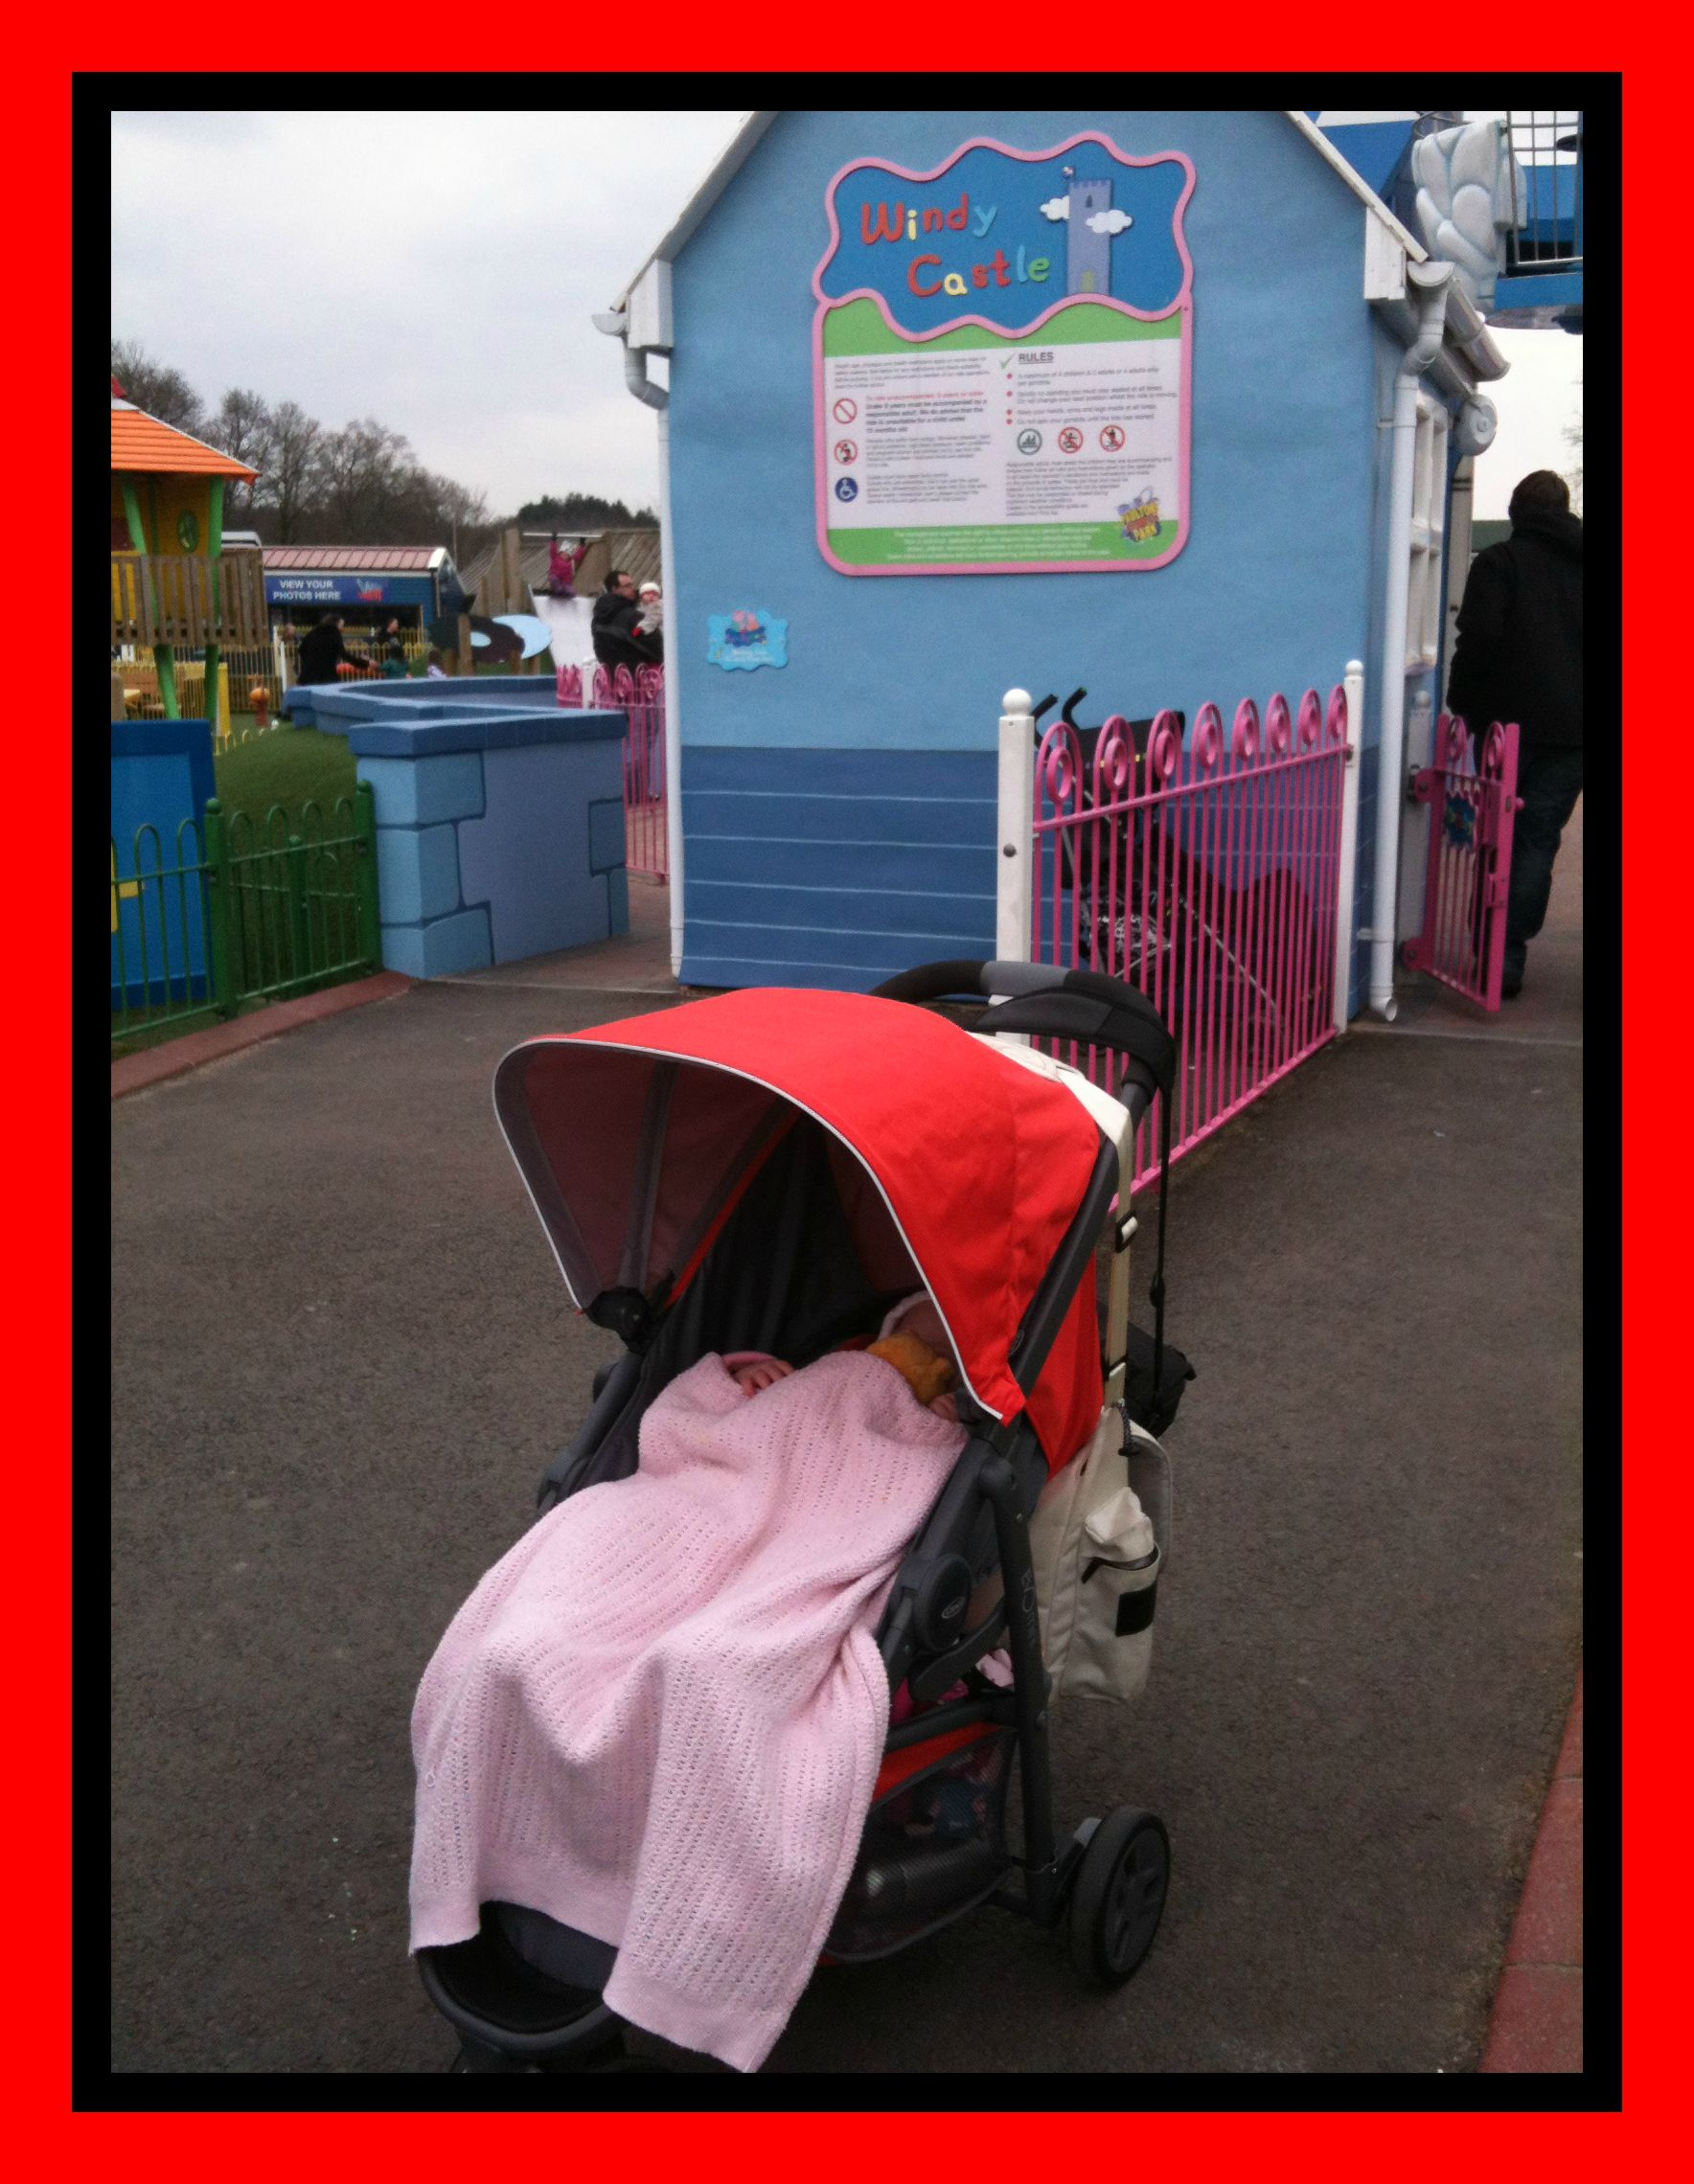 Snug and warm in the #EvoMini at Peppa Pig World #GracoBaby